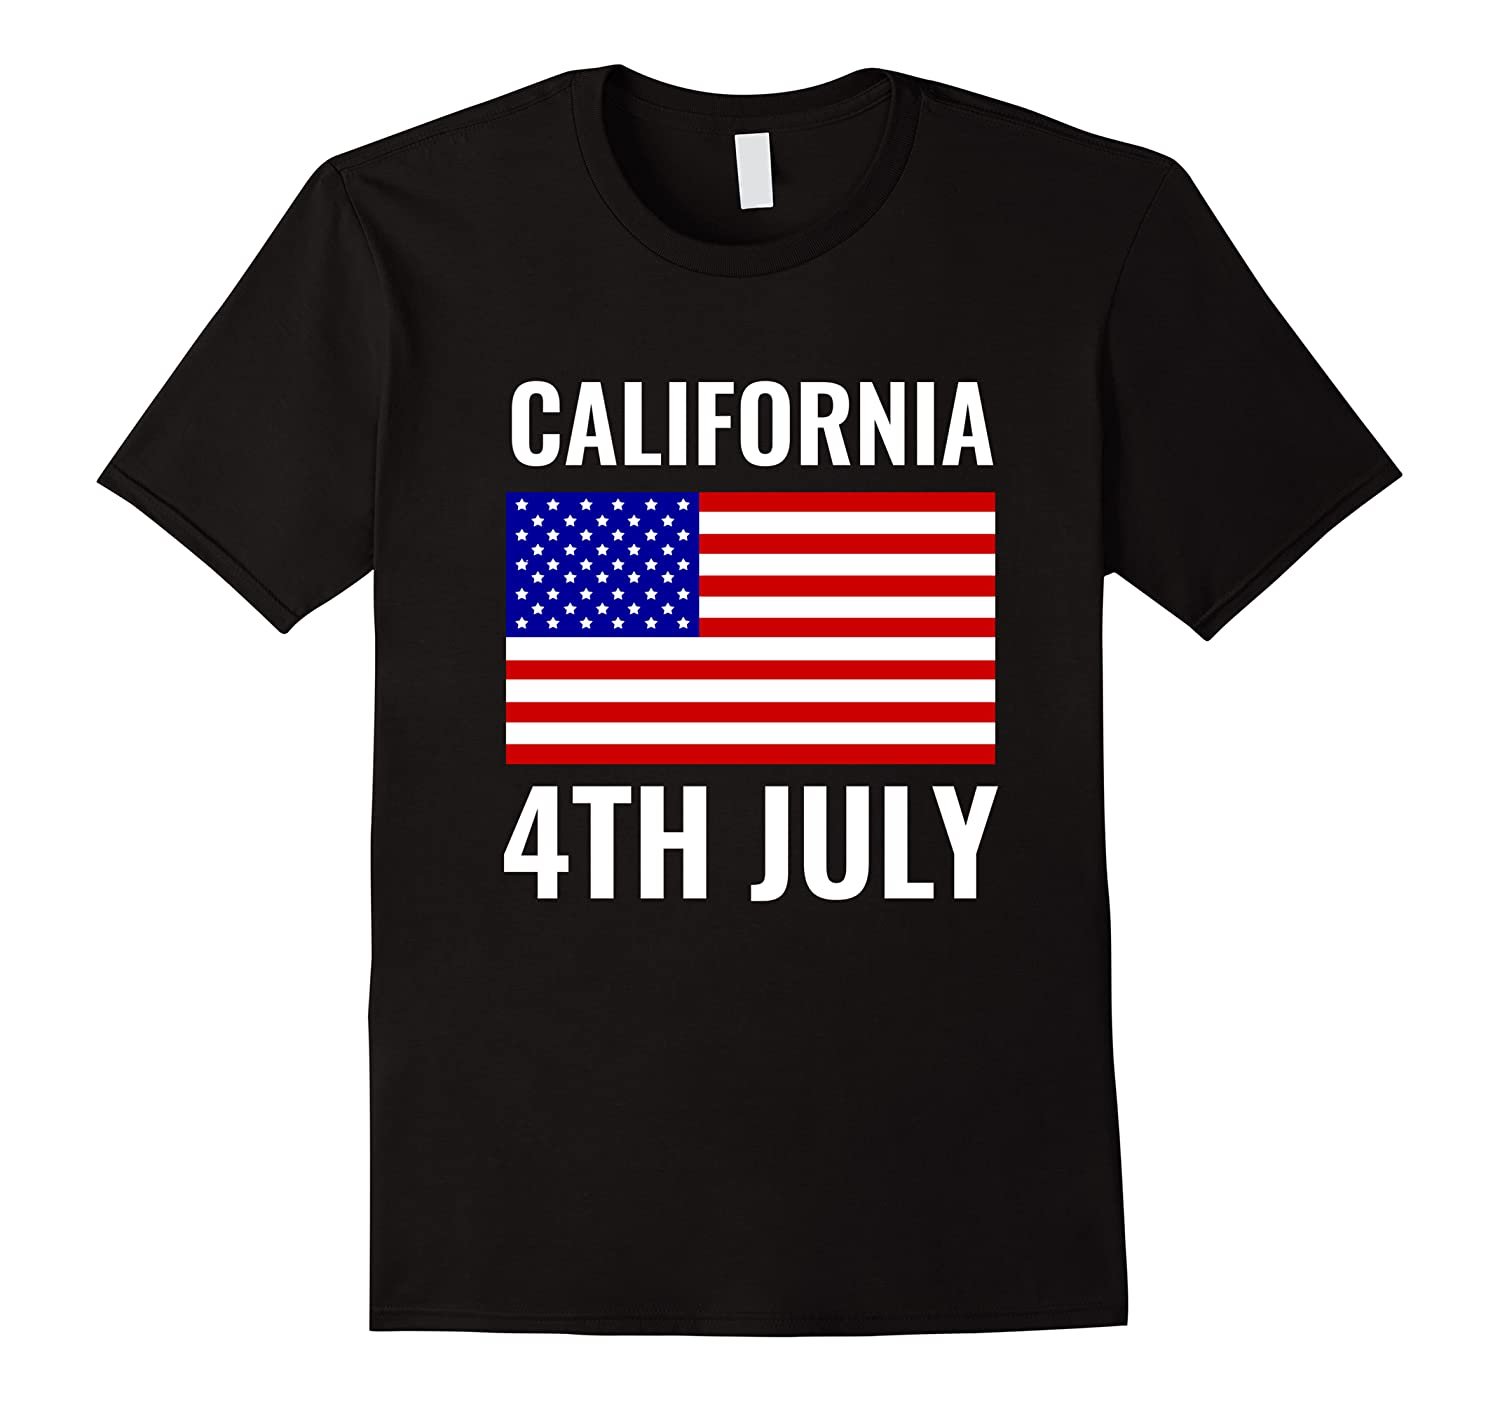 California Independence Day 4th July American Us Flag Gift Shirts Men Short Sleeve